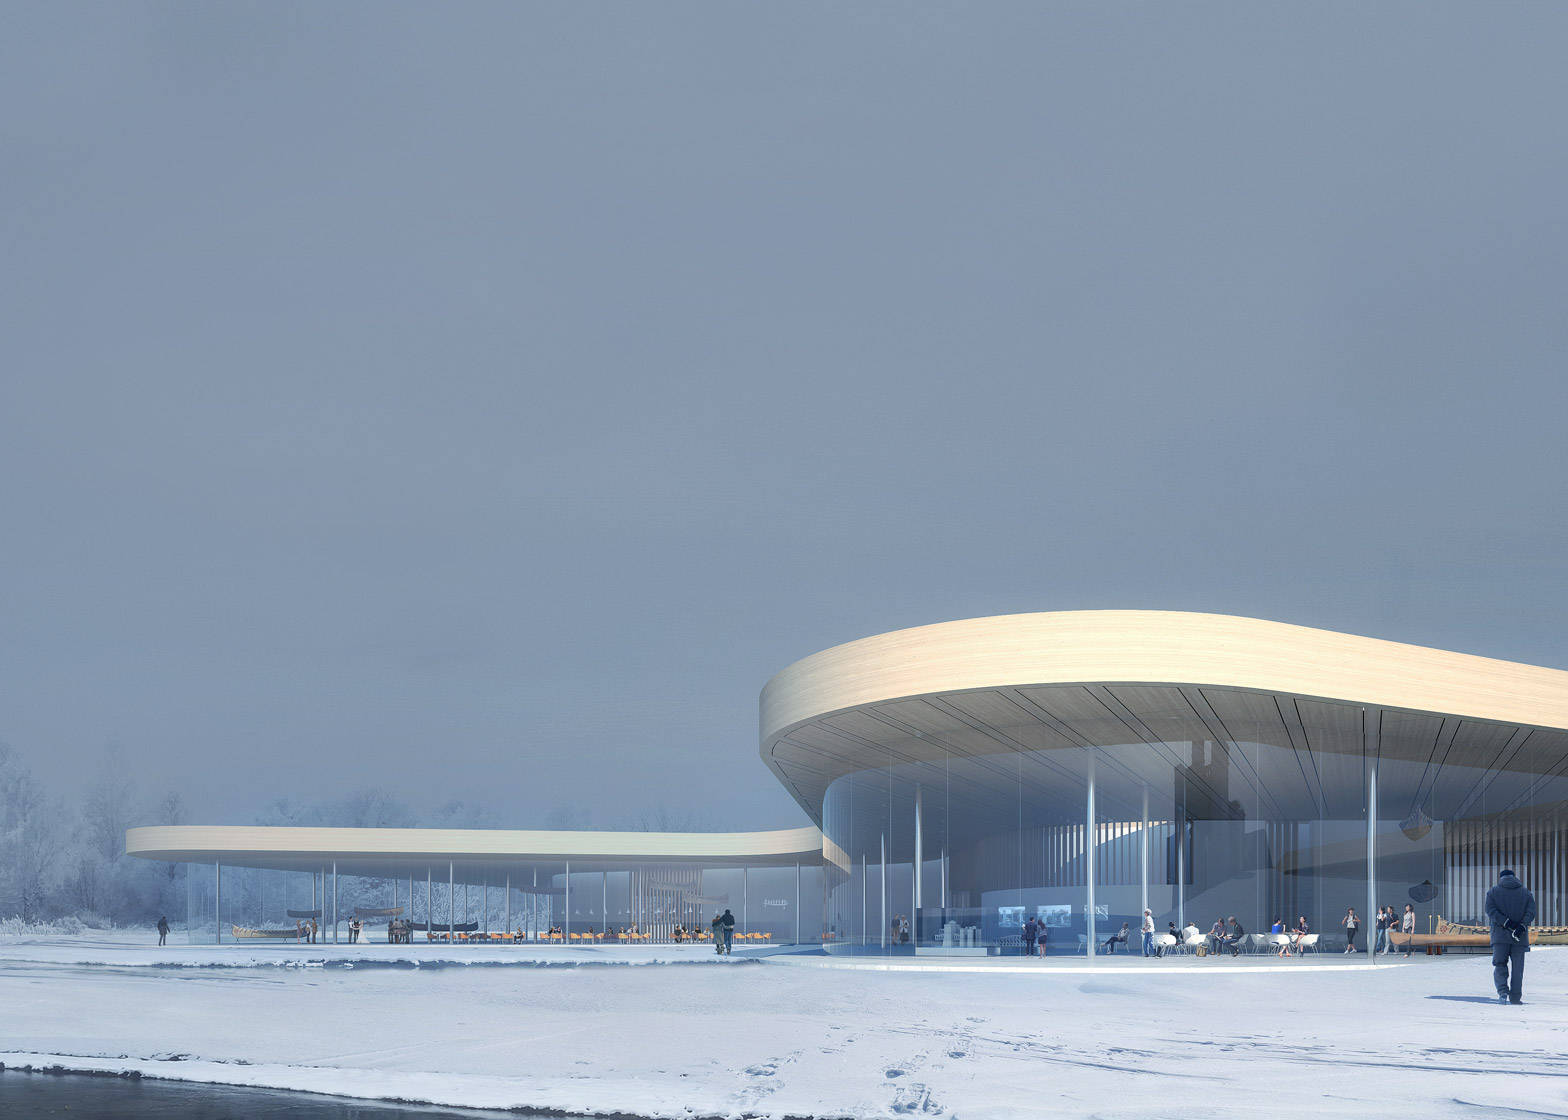 Render Ster van de Week - Kano Museum Canada door Heneghan Peng Architects